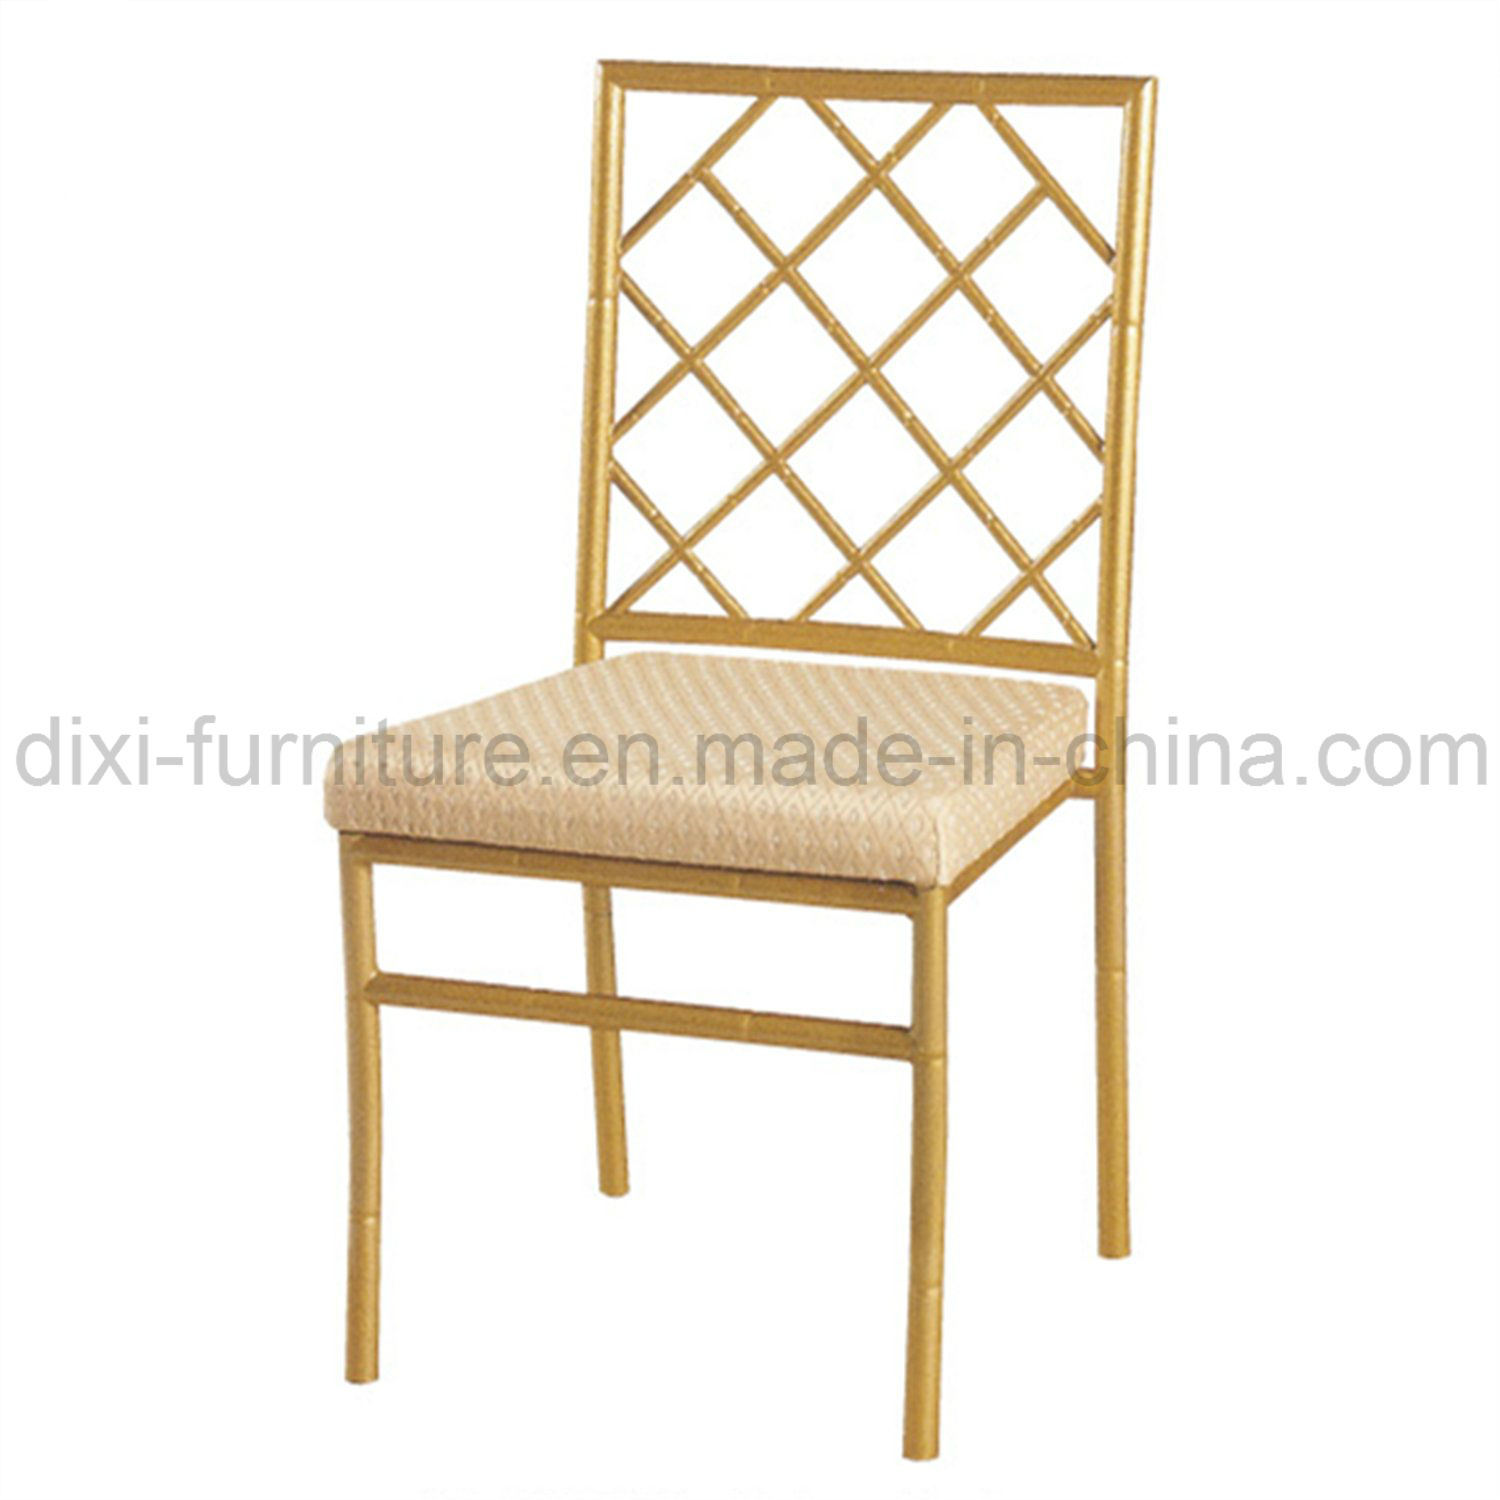 furniture made of bamboo. Furniture Made From Bamboo. China Wedding Aluminum Bamboo Chair With Fixed Seat Cushion And Cross Of